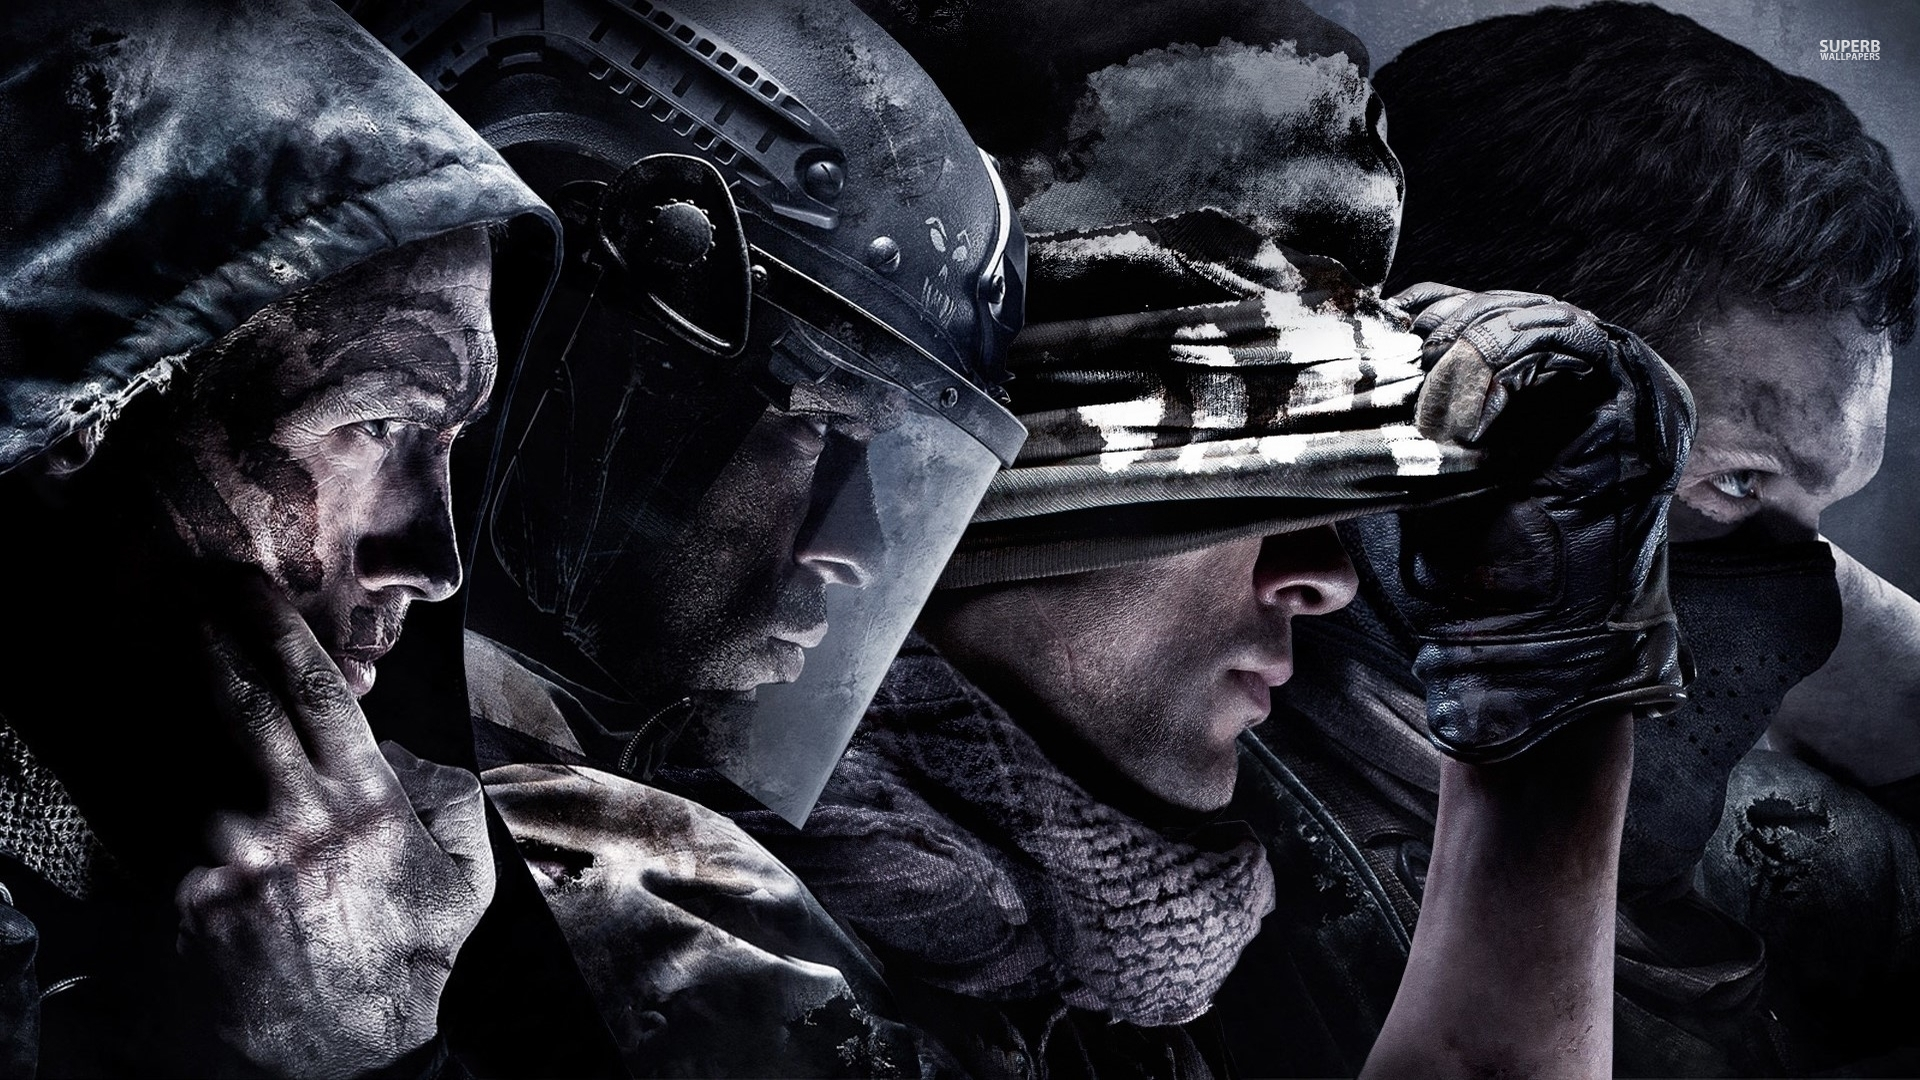 HQ Call Of Duty: Ghosts Wallpapers | File 1354.32Kb